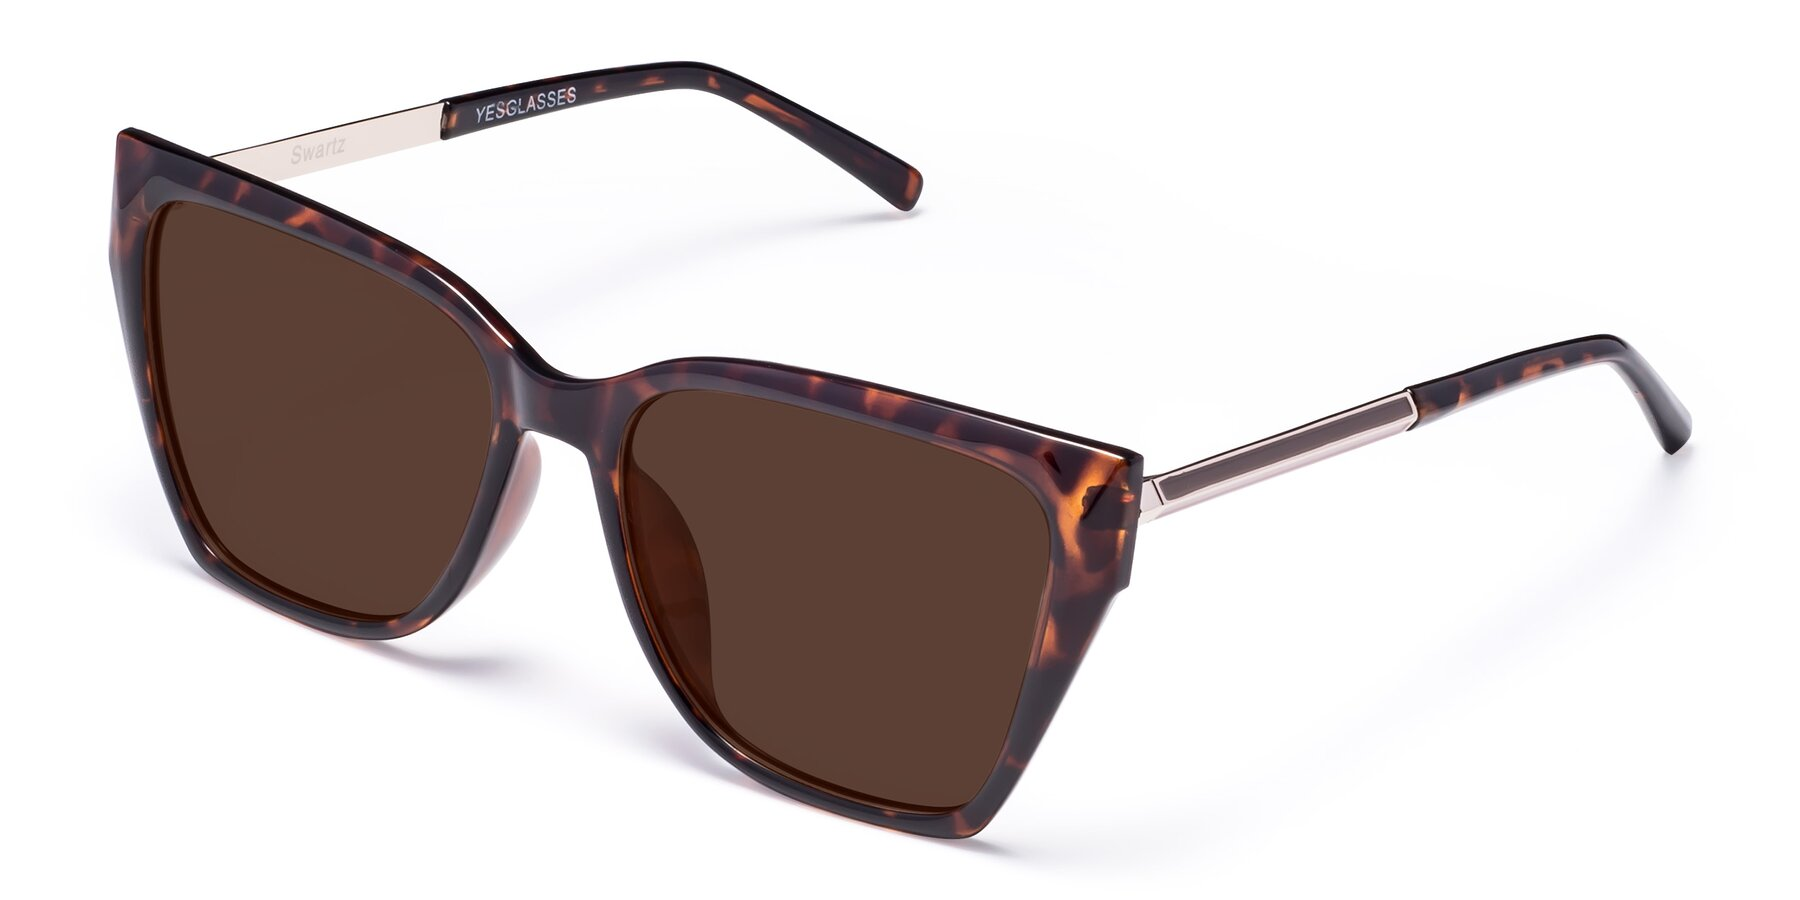 Angle of Swartz in Tortoise with Brown Tinted Lenses